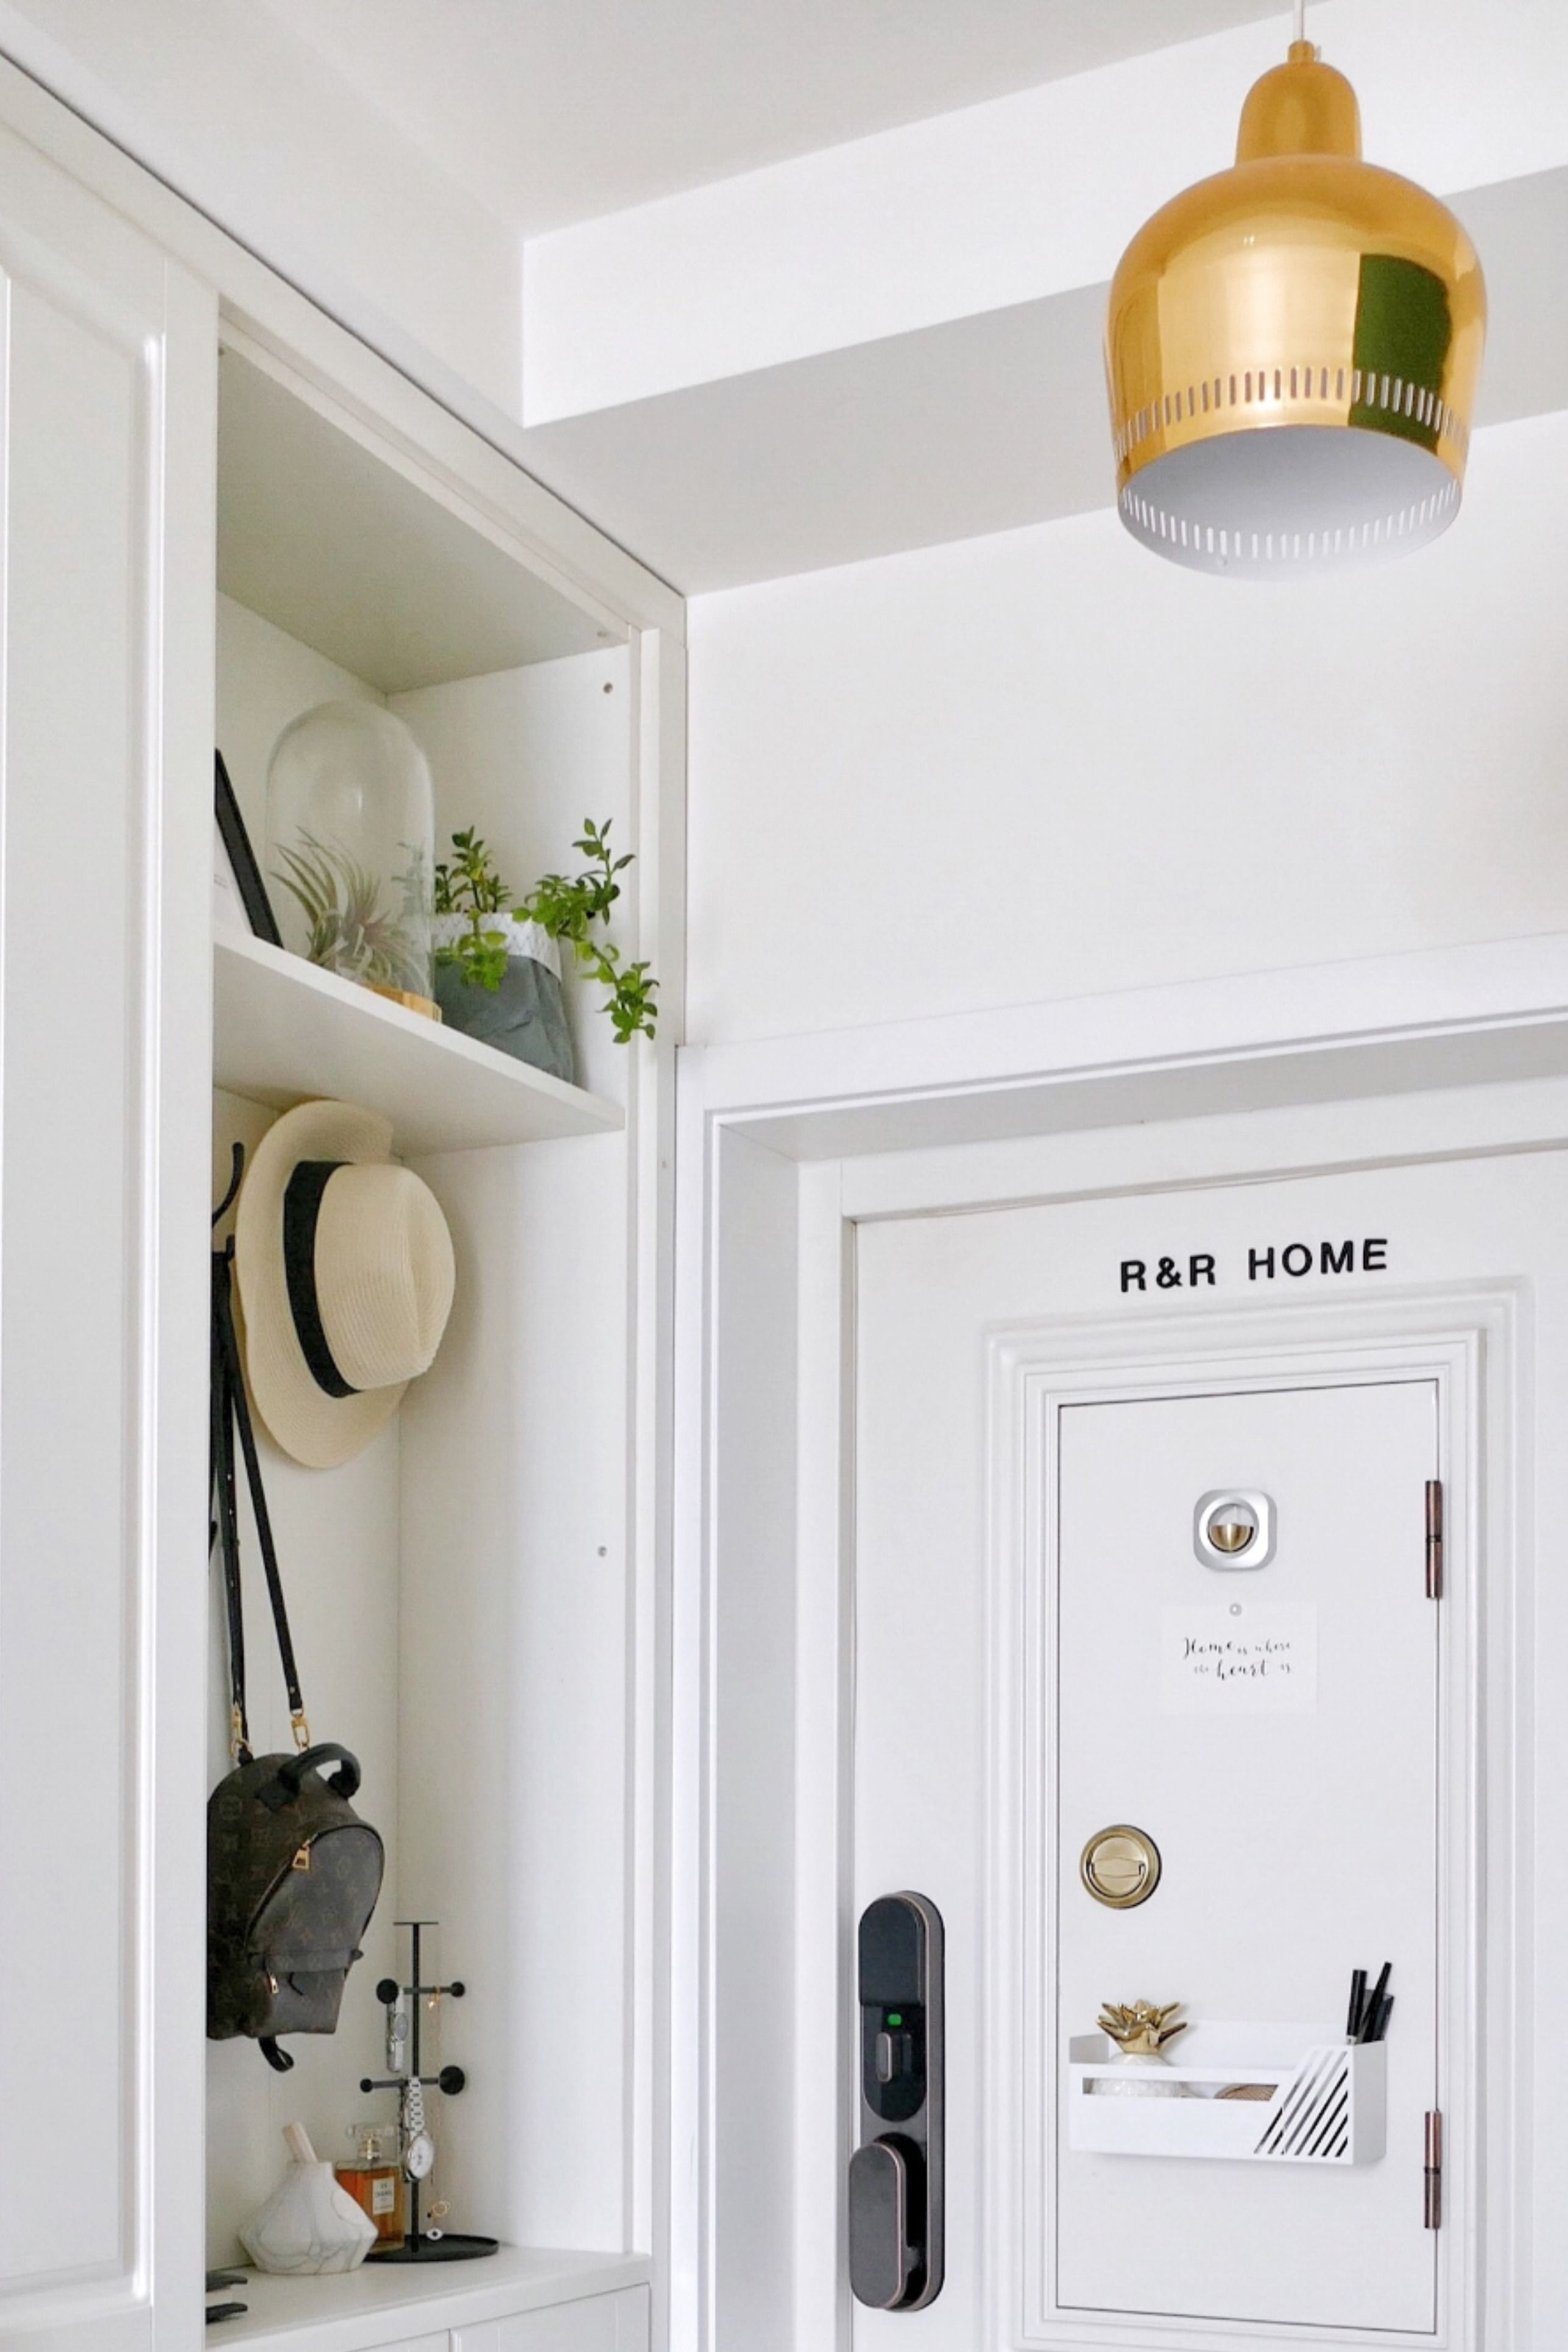 Wow Check Out This Modern Door Chime Amazing For Home